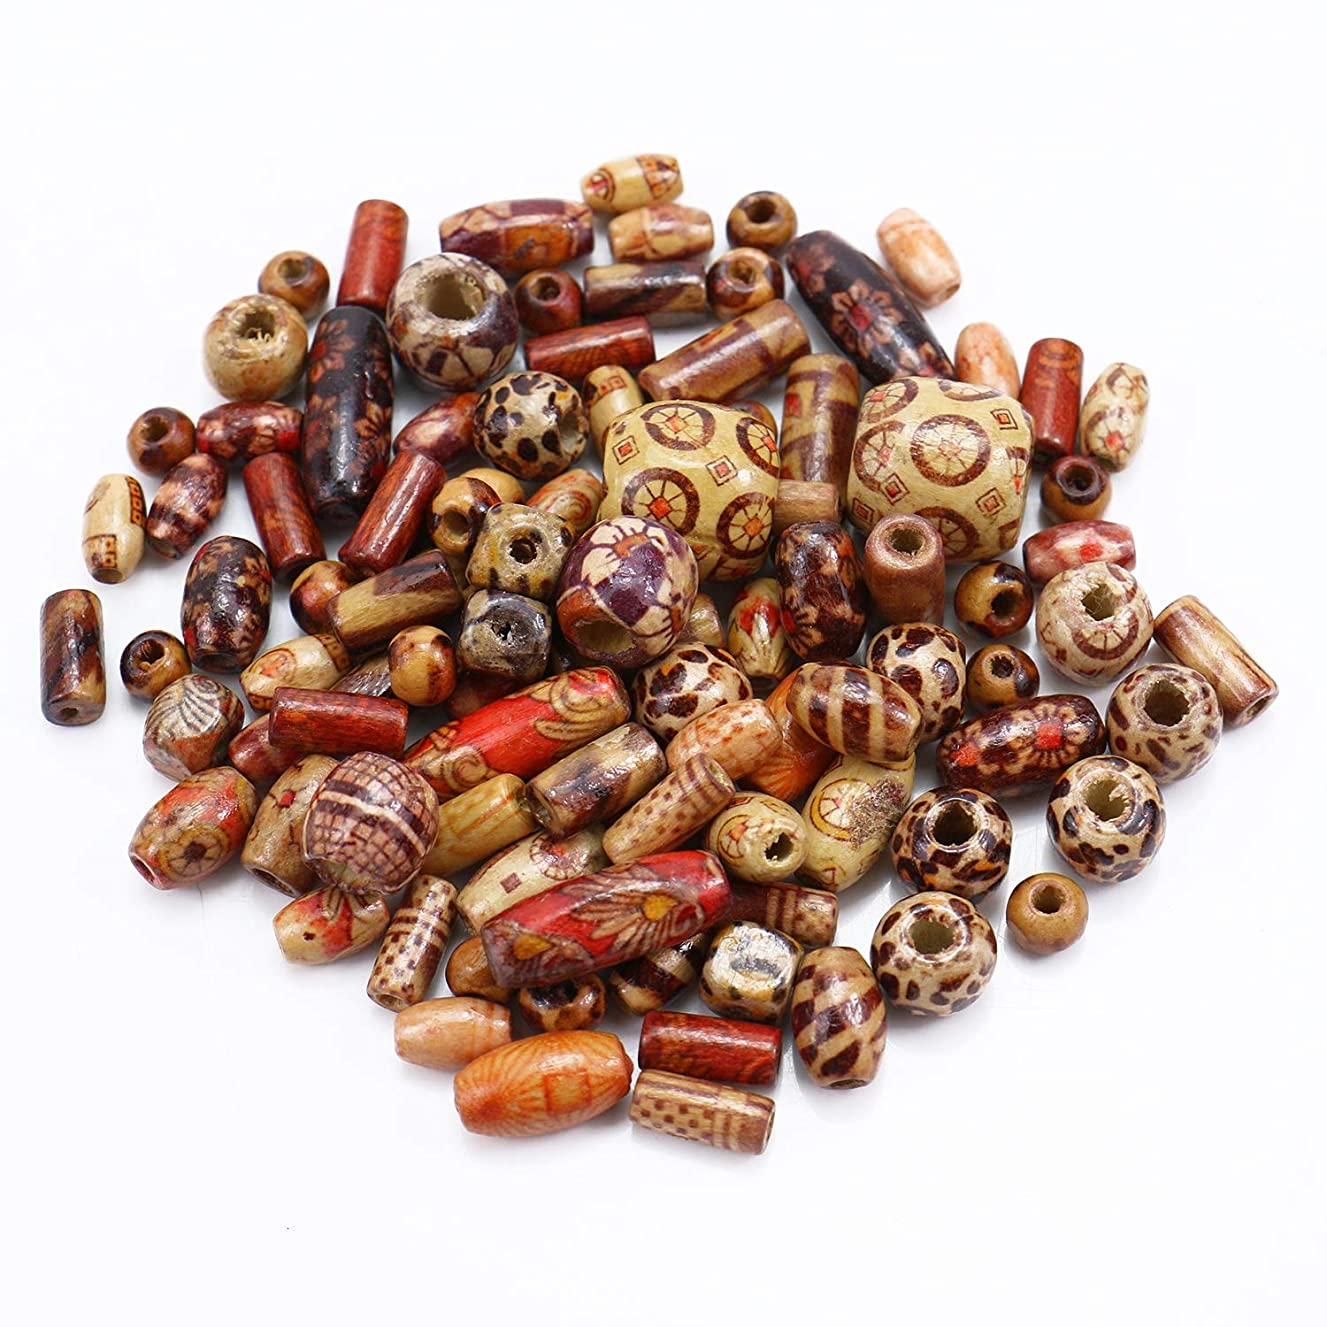 Monrocco 200 pcs Mixed Painted Wood Beads Large Hole Wood Spacer Beads for Jewelry Making DIY Bracelet Necklace